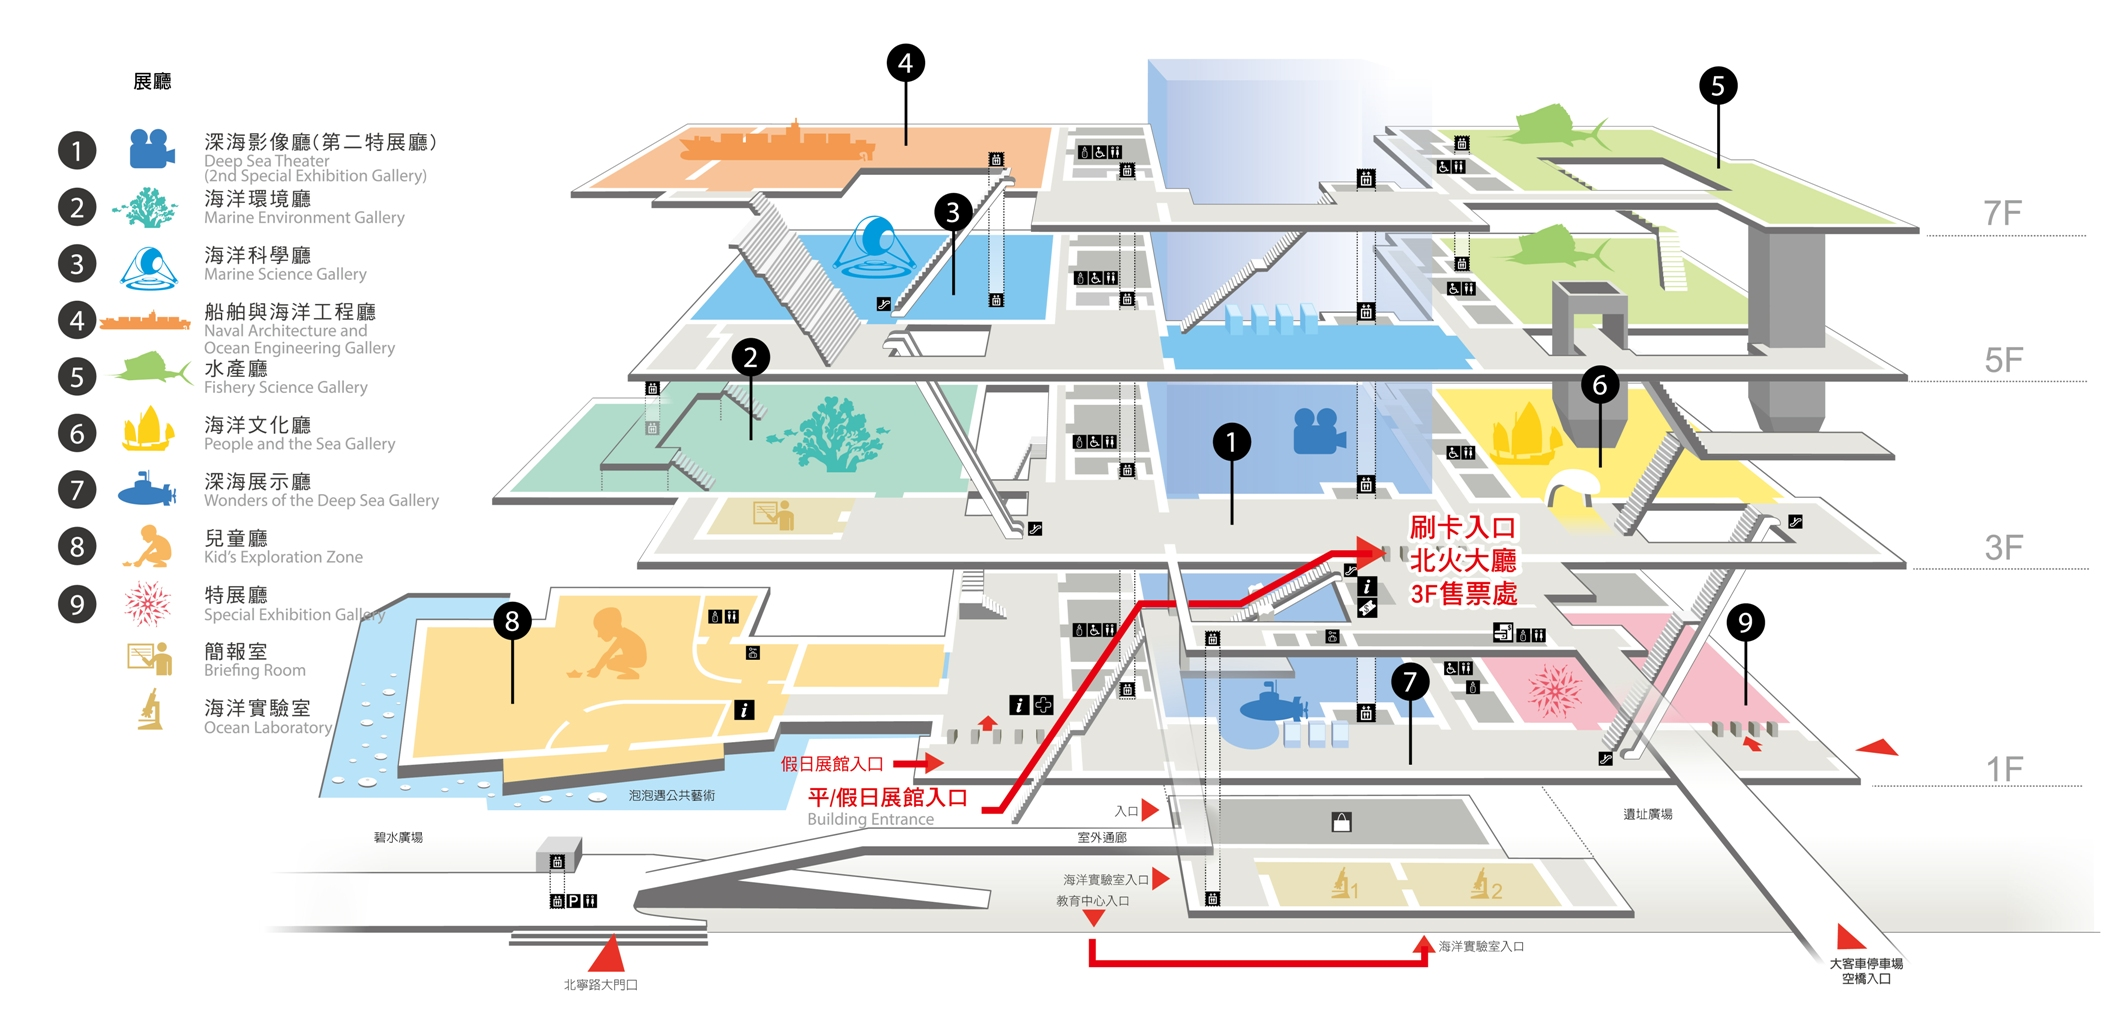 Floor layout of the National Museum of Marine Science and Technology